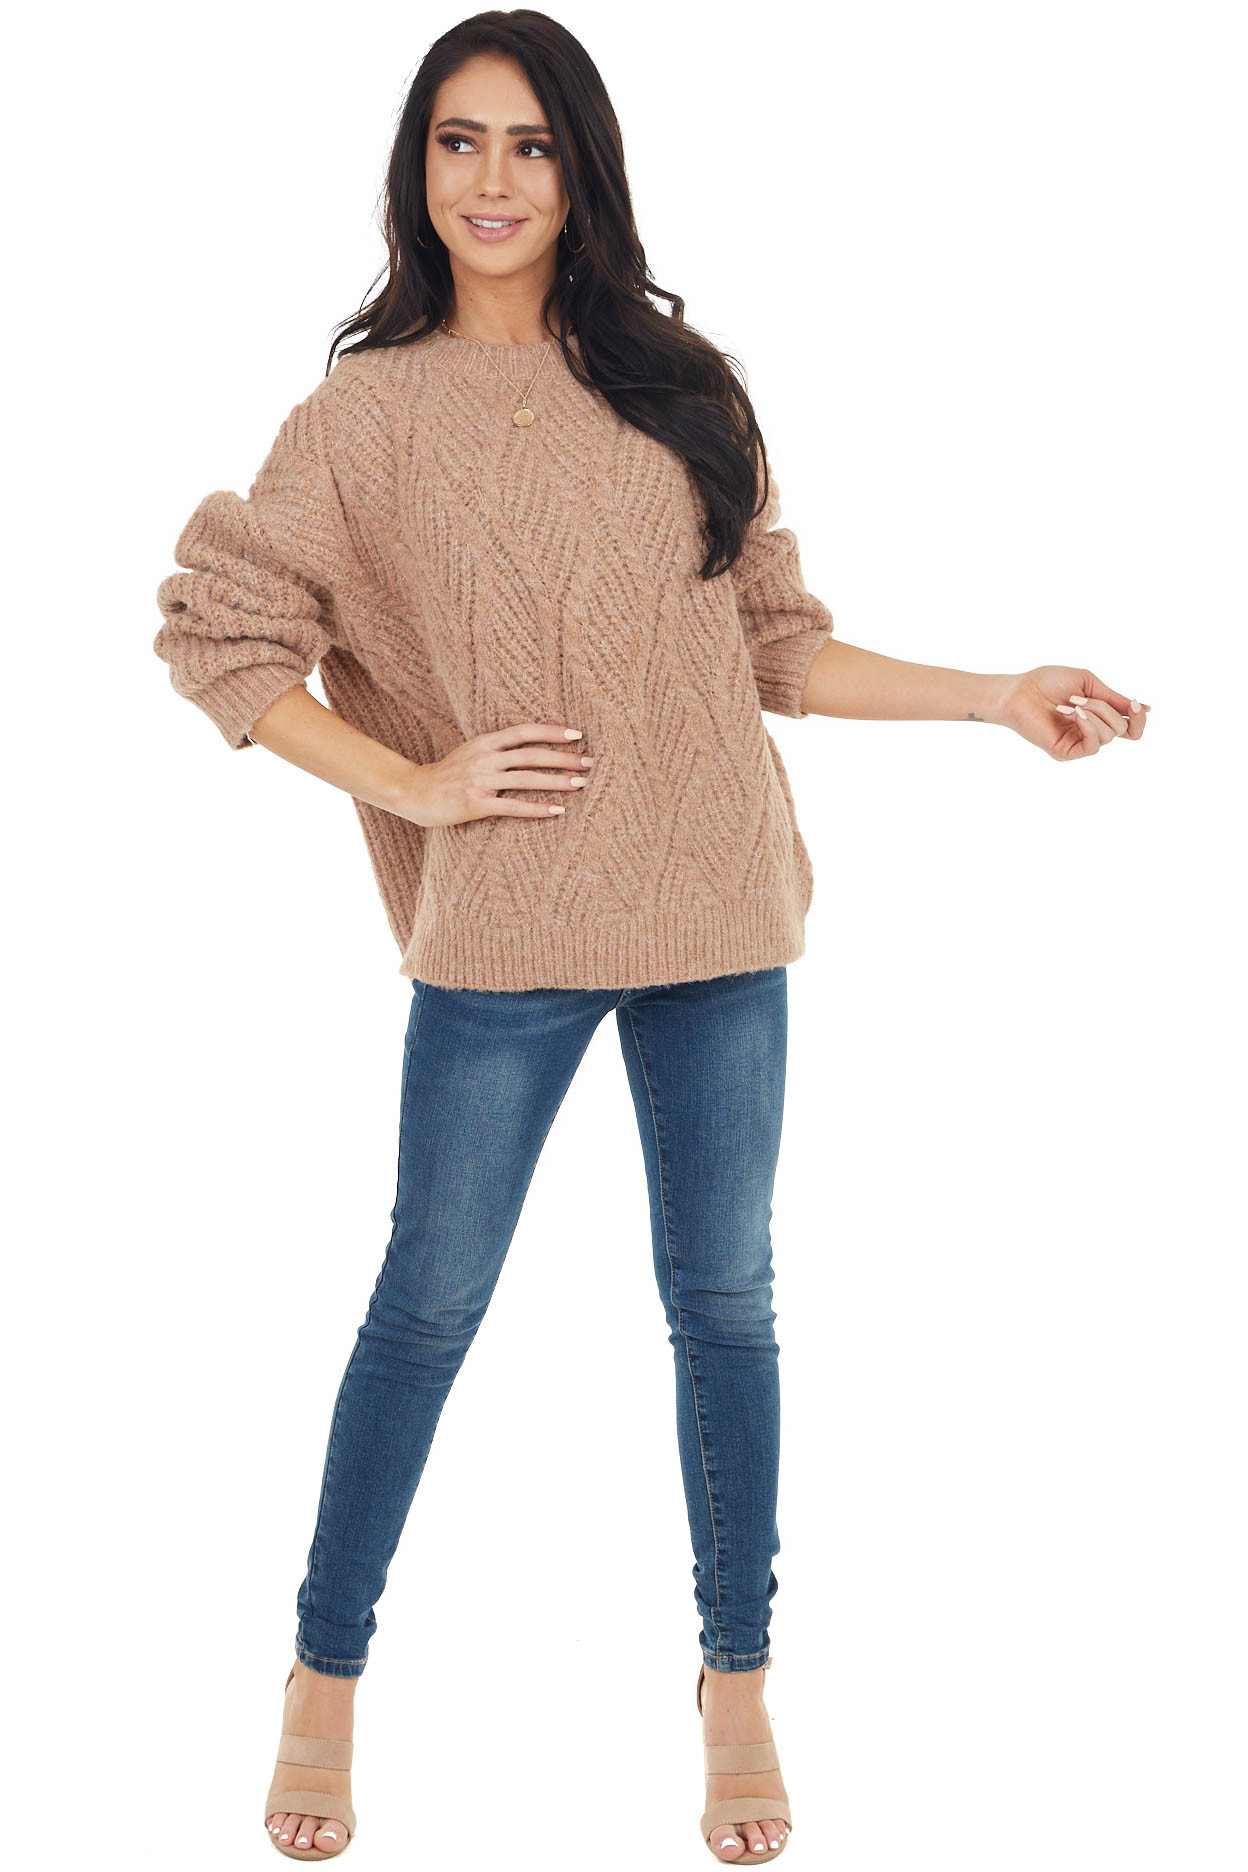 Faded Camel Long Sleeve Textured Knit Oversized Sweater